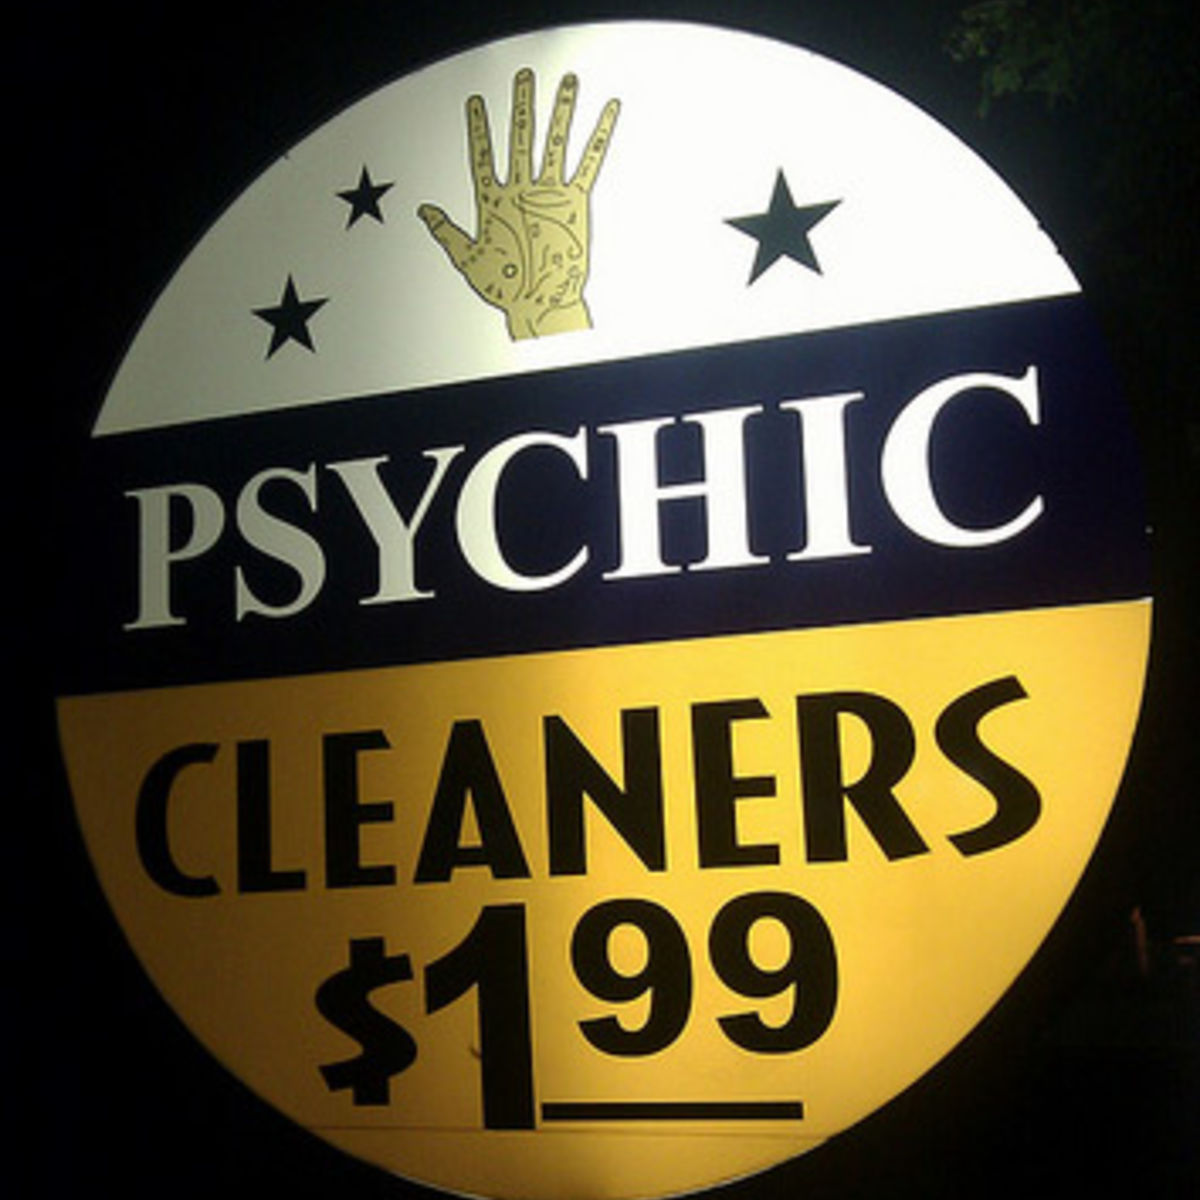 psychic_cleaners.jpg